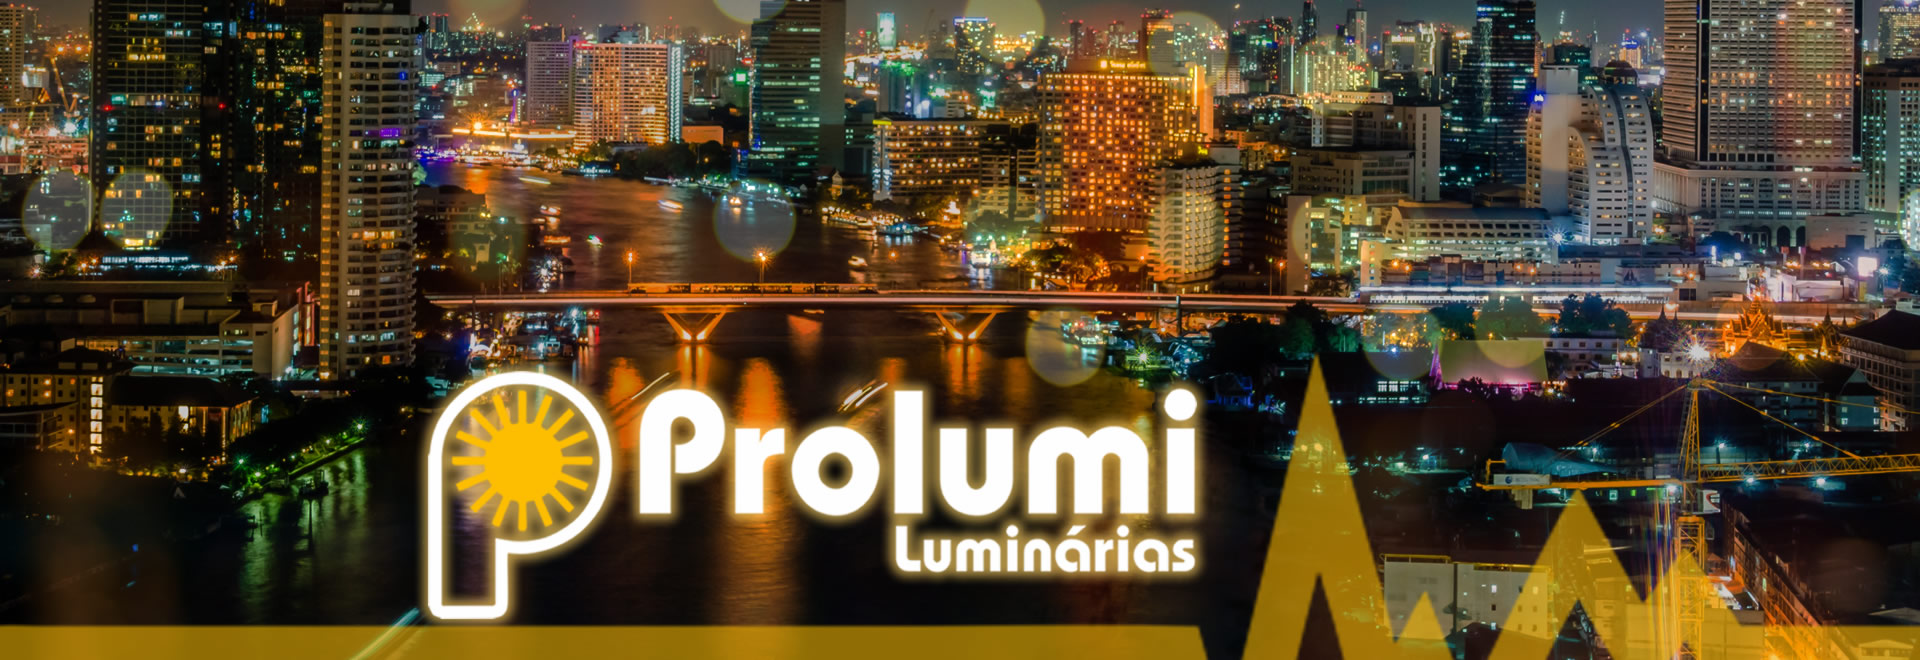 Prolumi Lumiárias banner 04